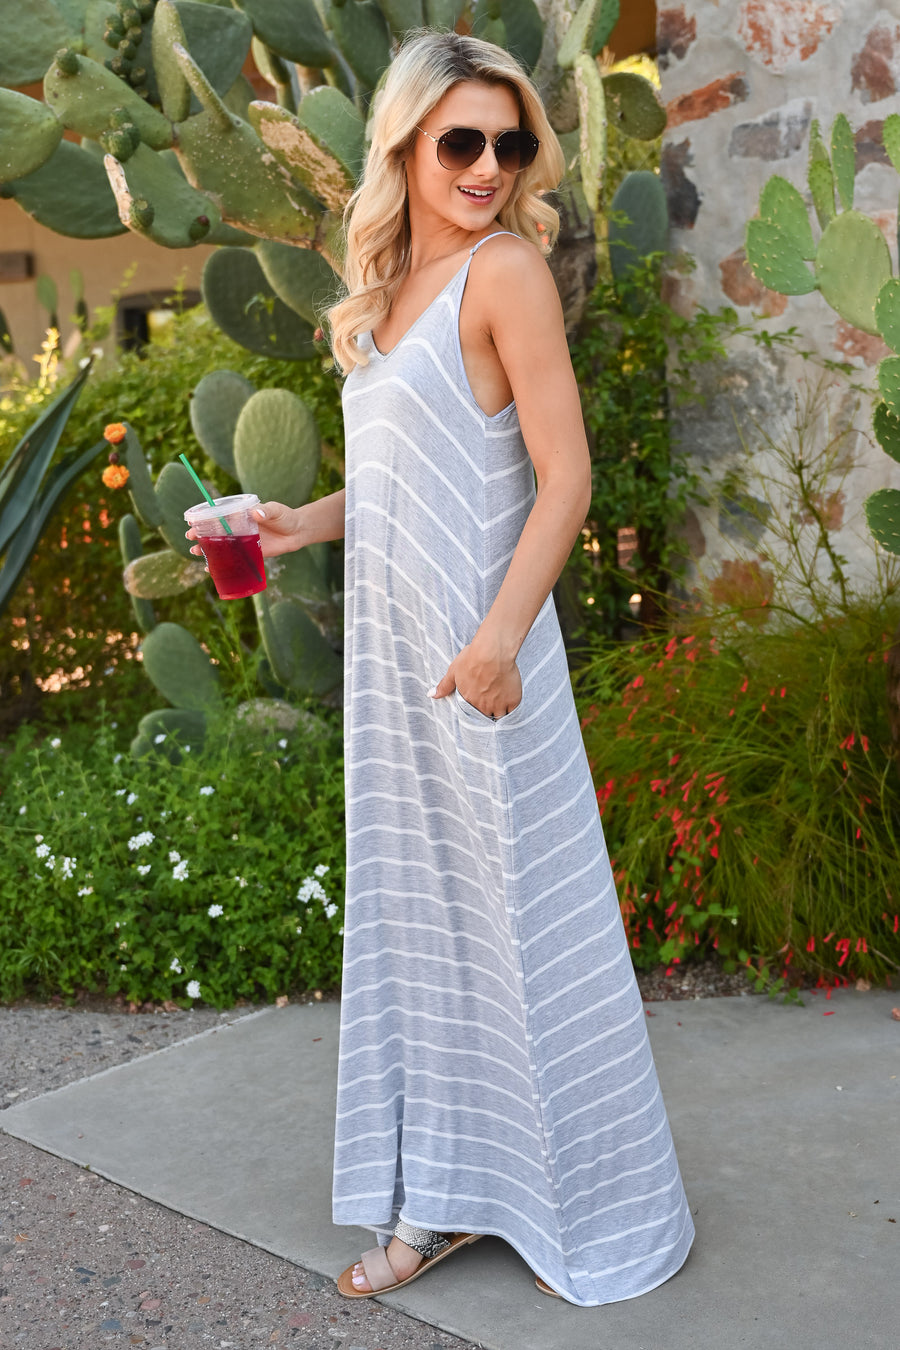 Something Simple Striped Maxi Dress - Heather Grey womens casual spaghetti strap striped long dress front